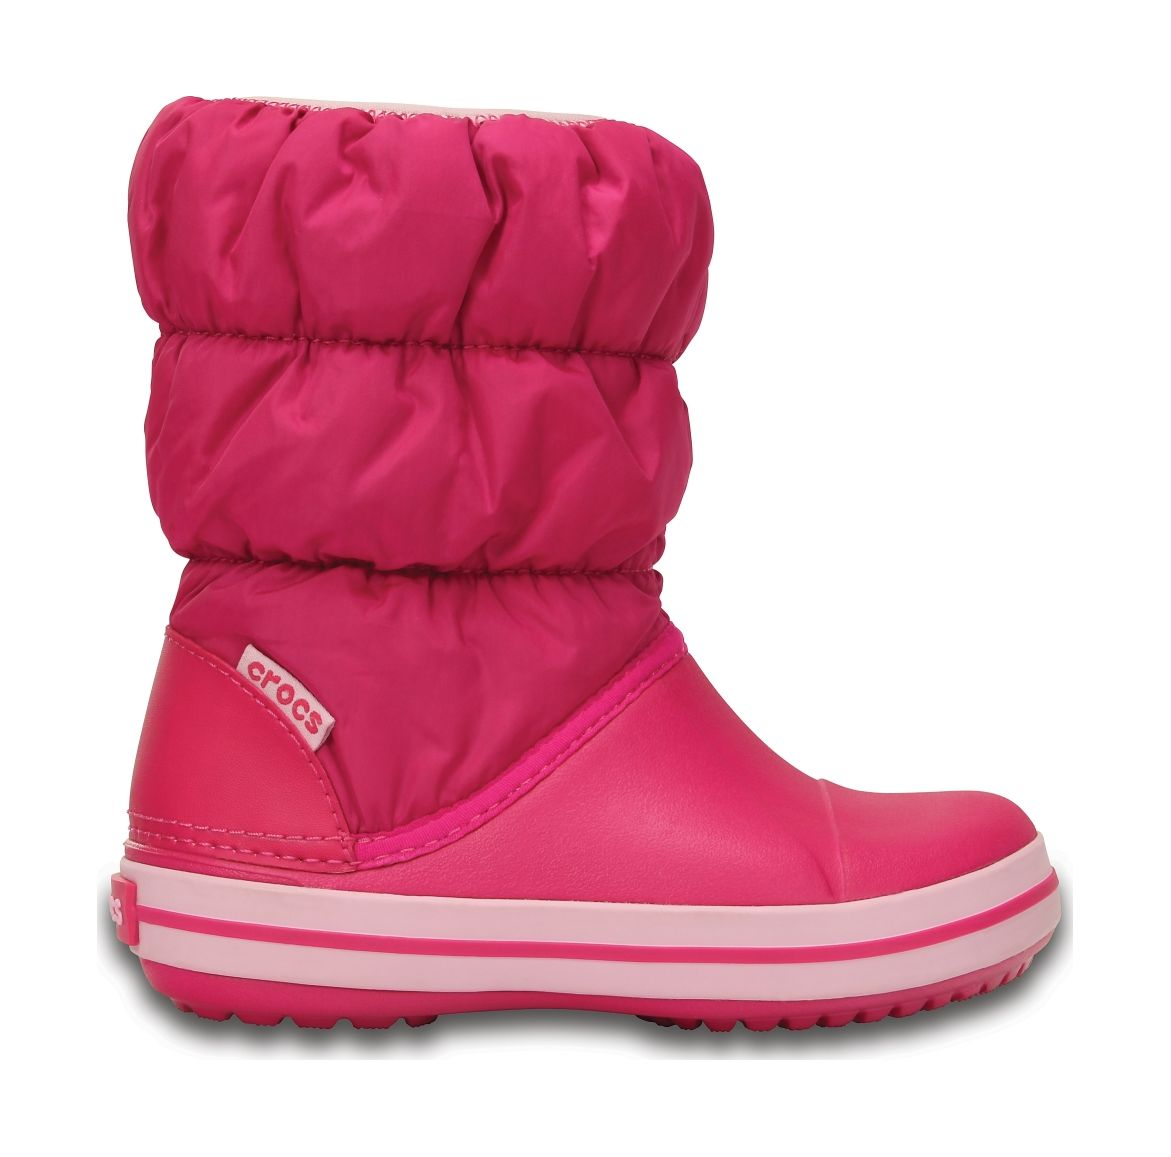 Crocs™ Kids' Winter Puff Boot Candy Pink 28